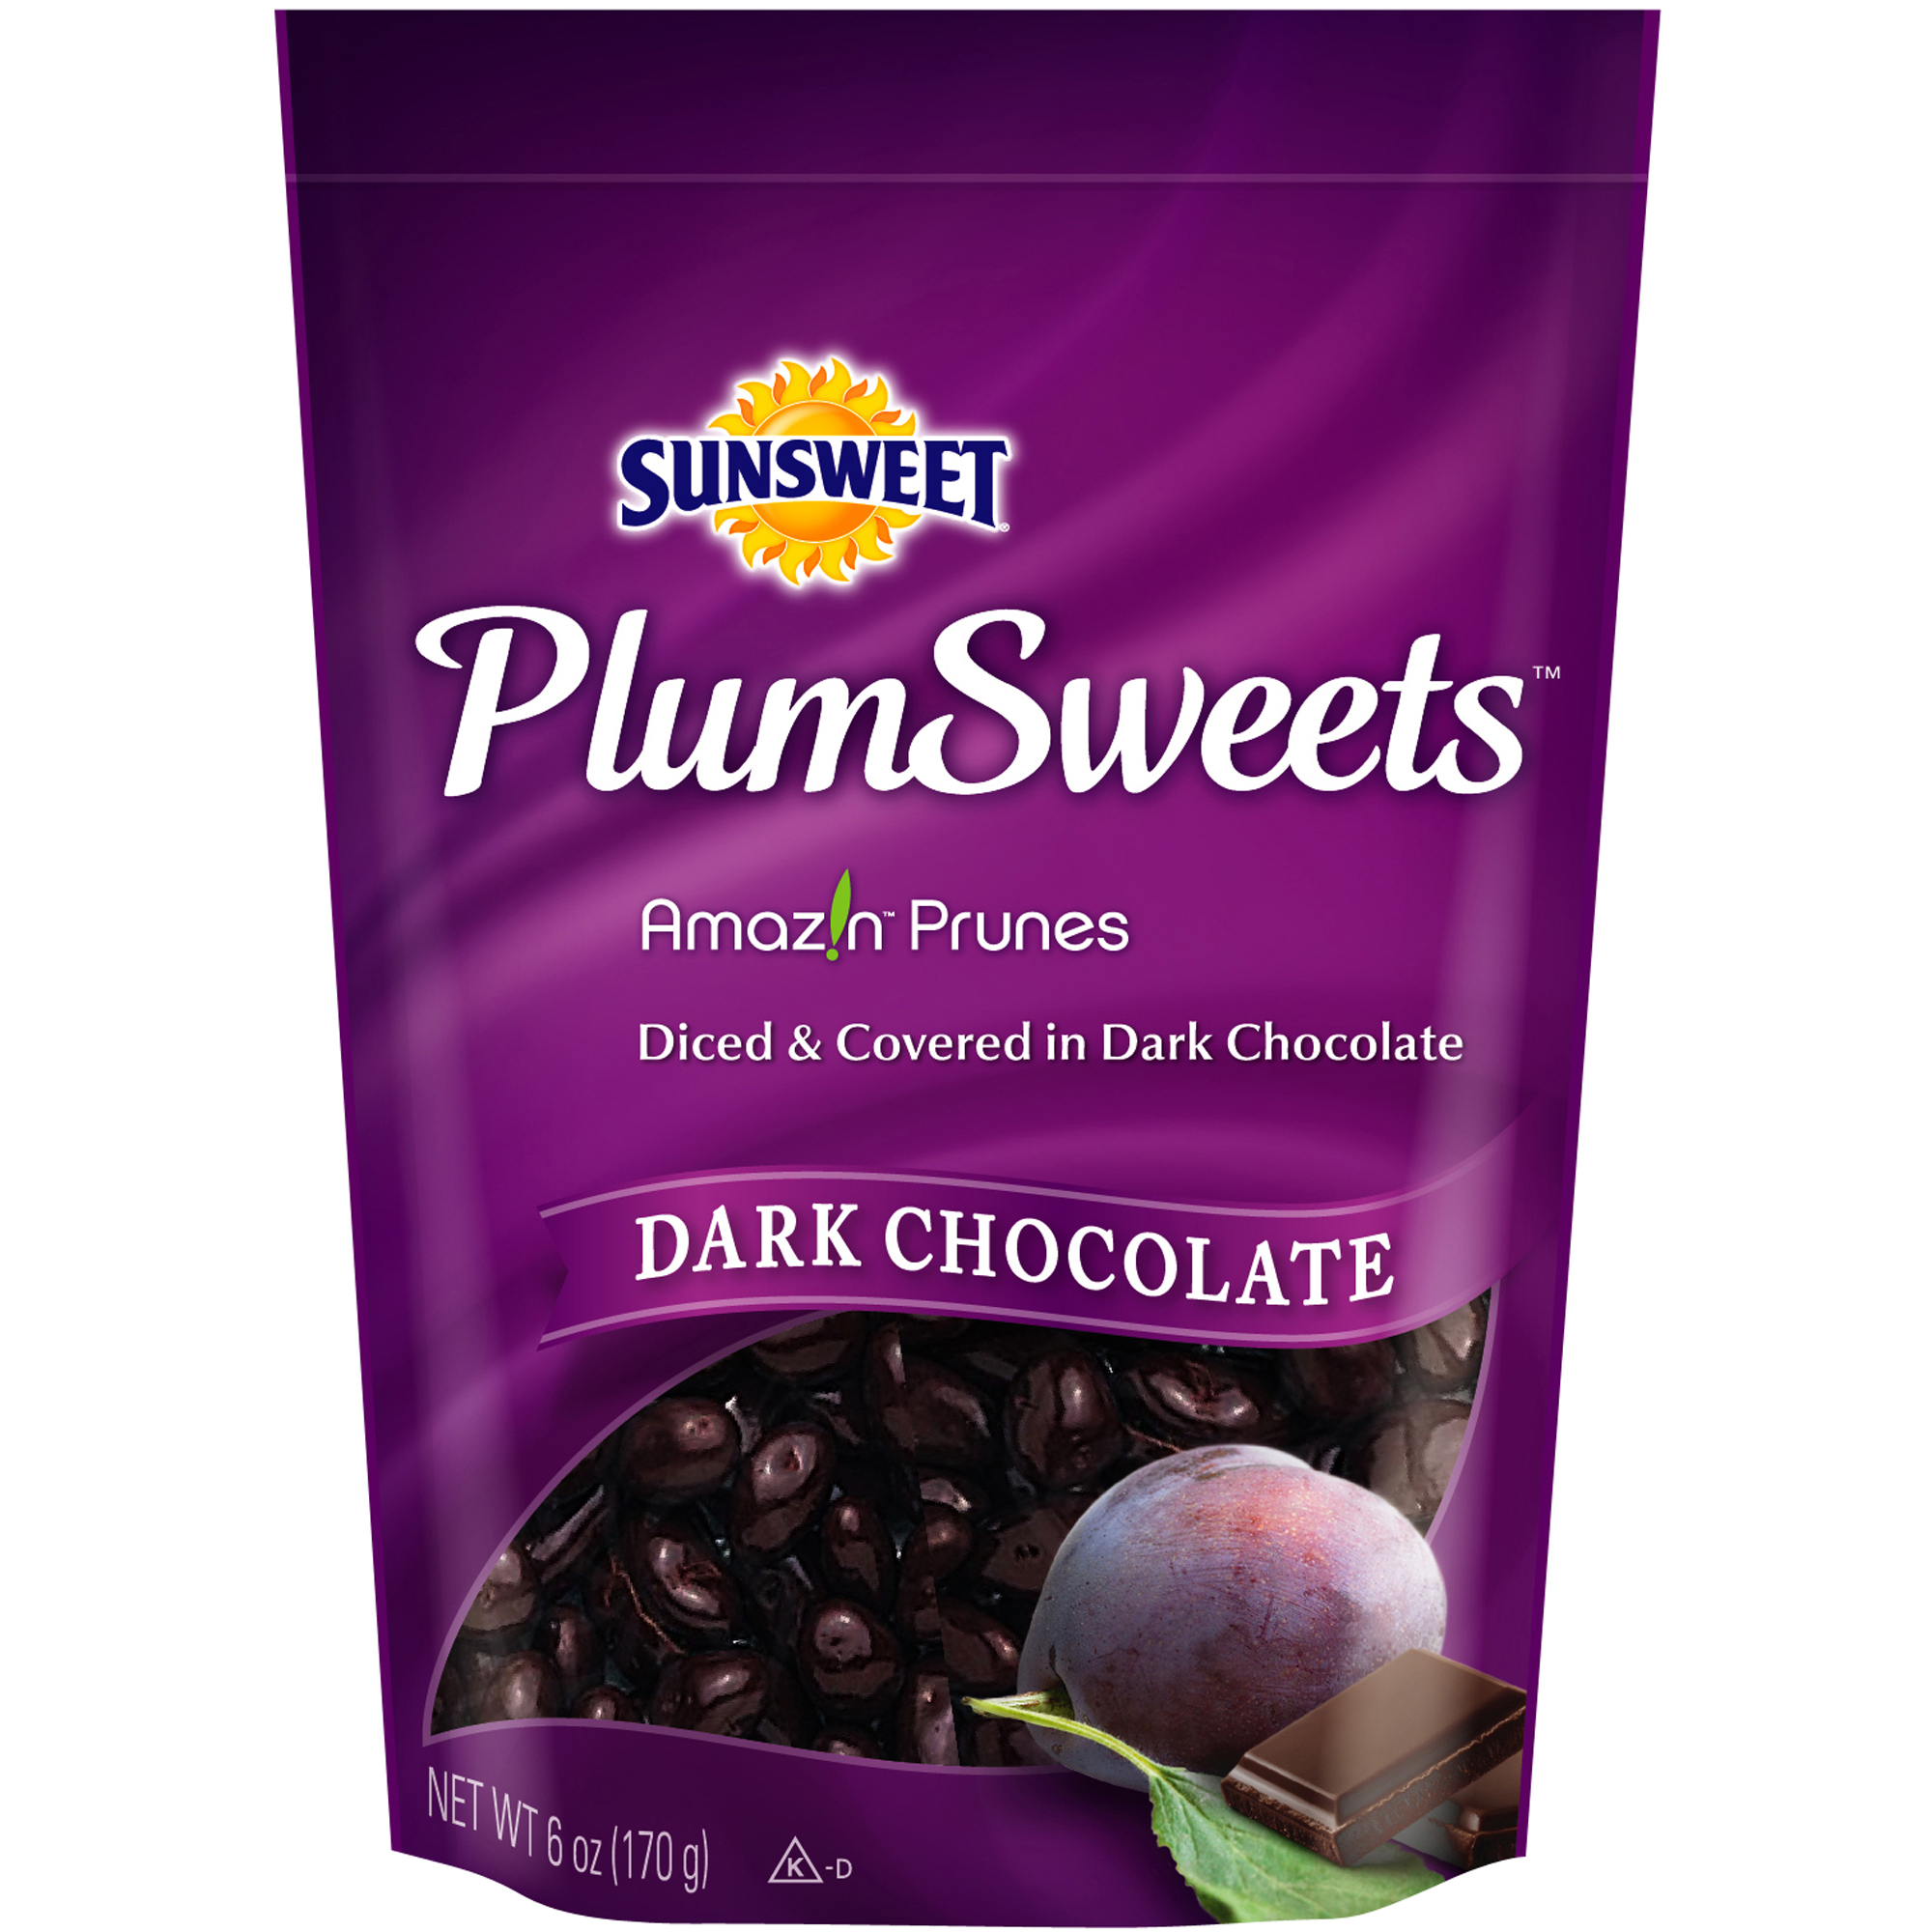 Sunsweet Dark Chocolate Covered Plumsweet Bites, 6 oz